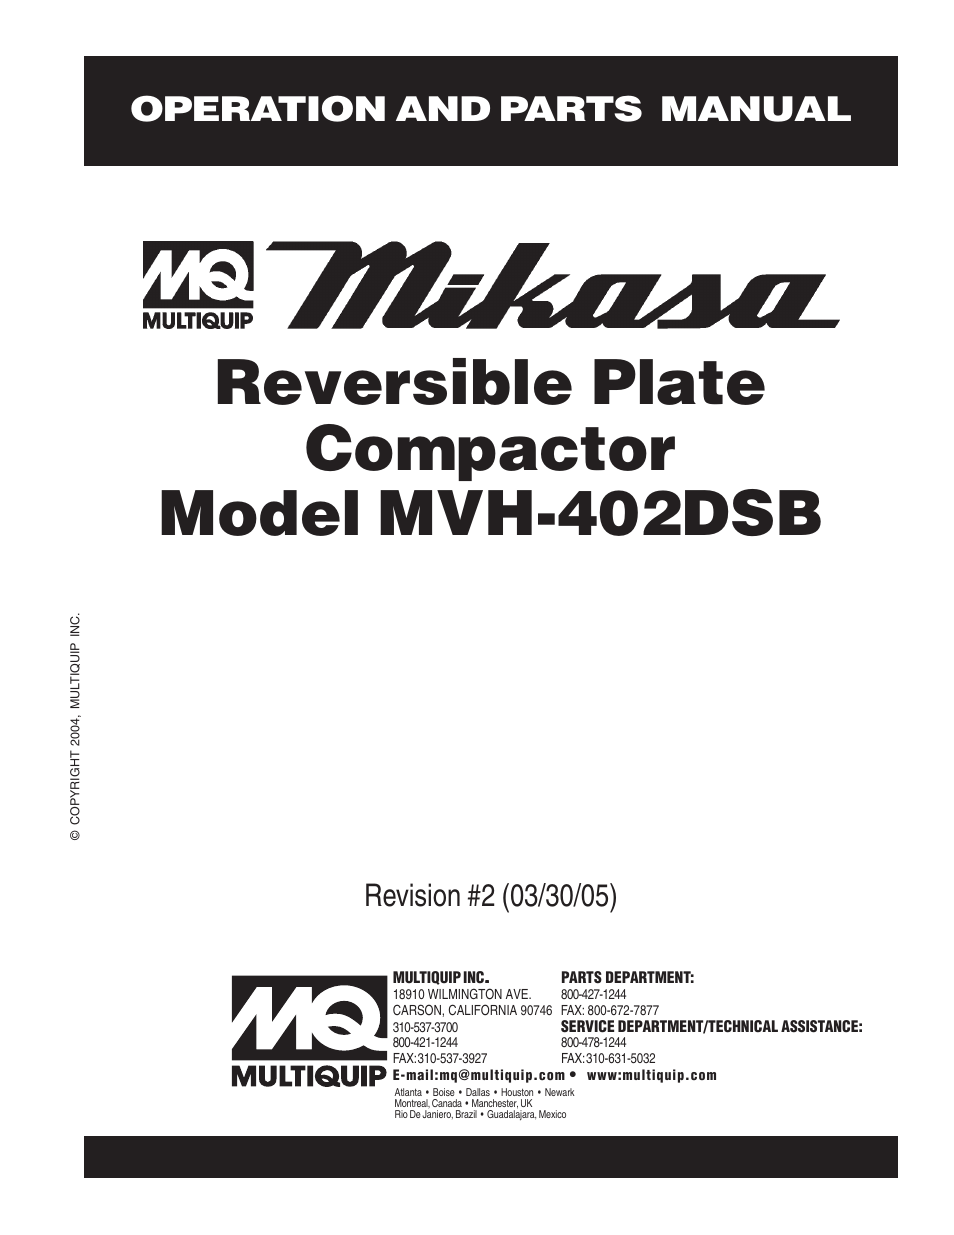 Multiquip Mikasa Reversible Plate Compactor MVH-402DSB